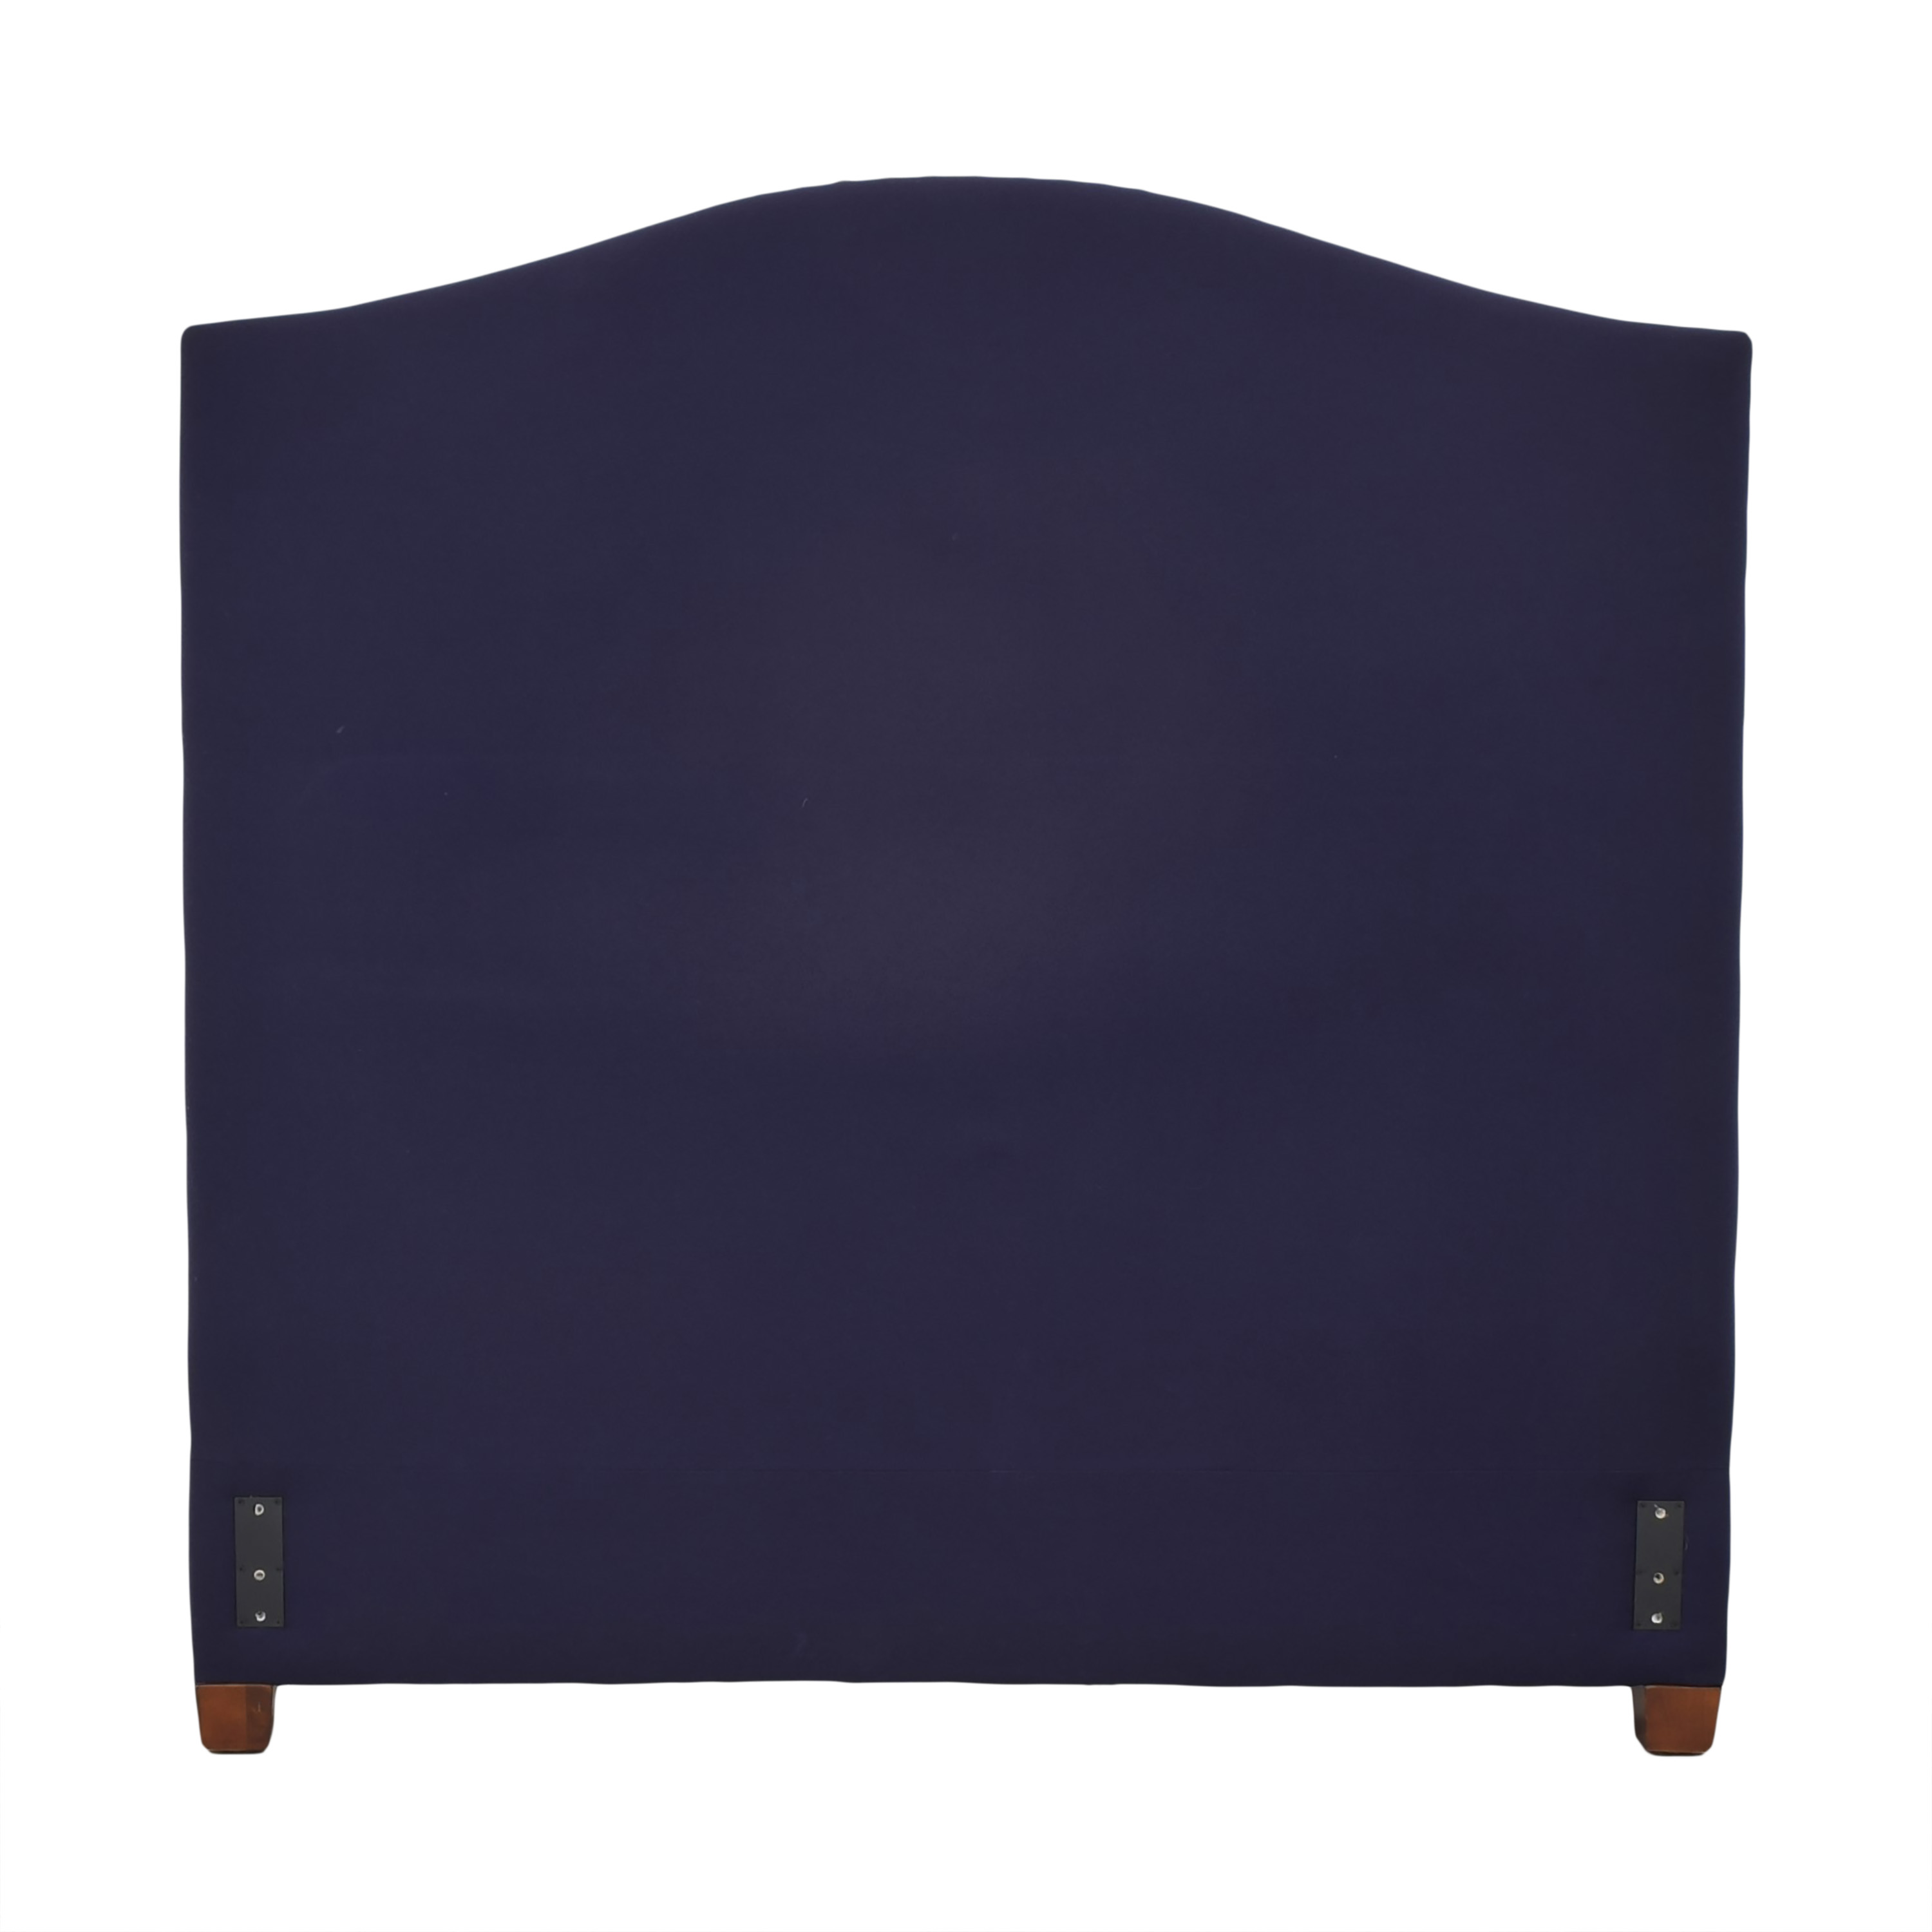 Pottery Barn Pottery Barn Raleigh Full Headboard dark blue